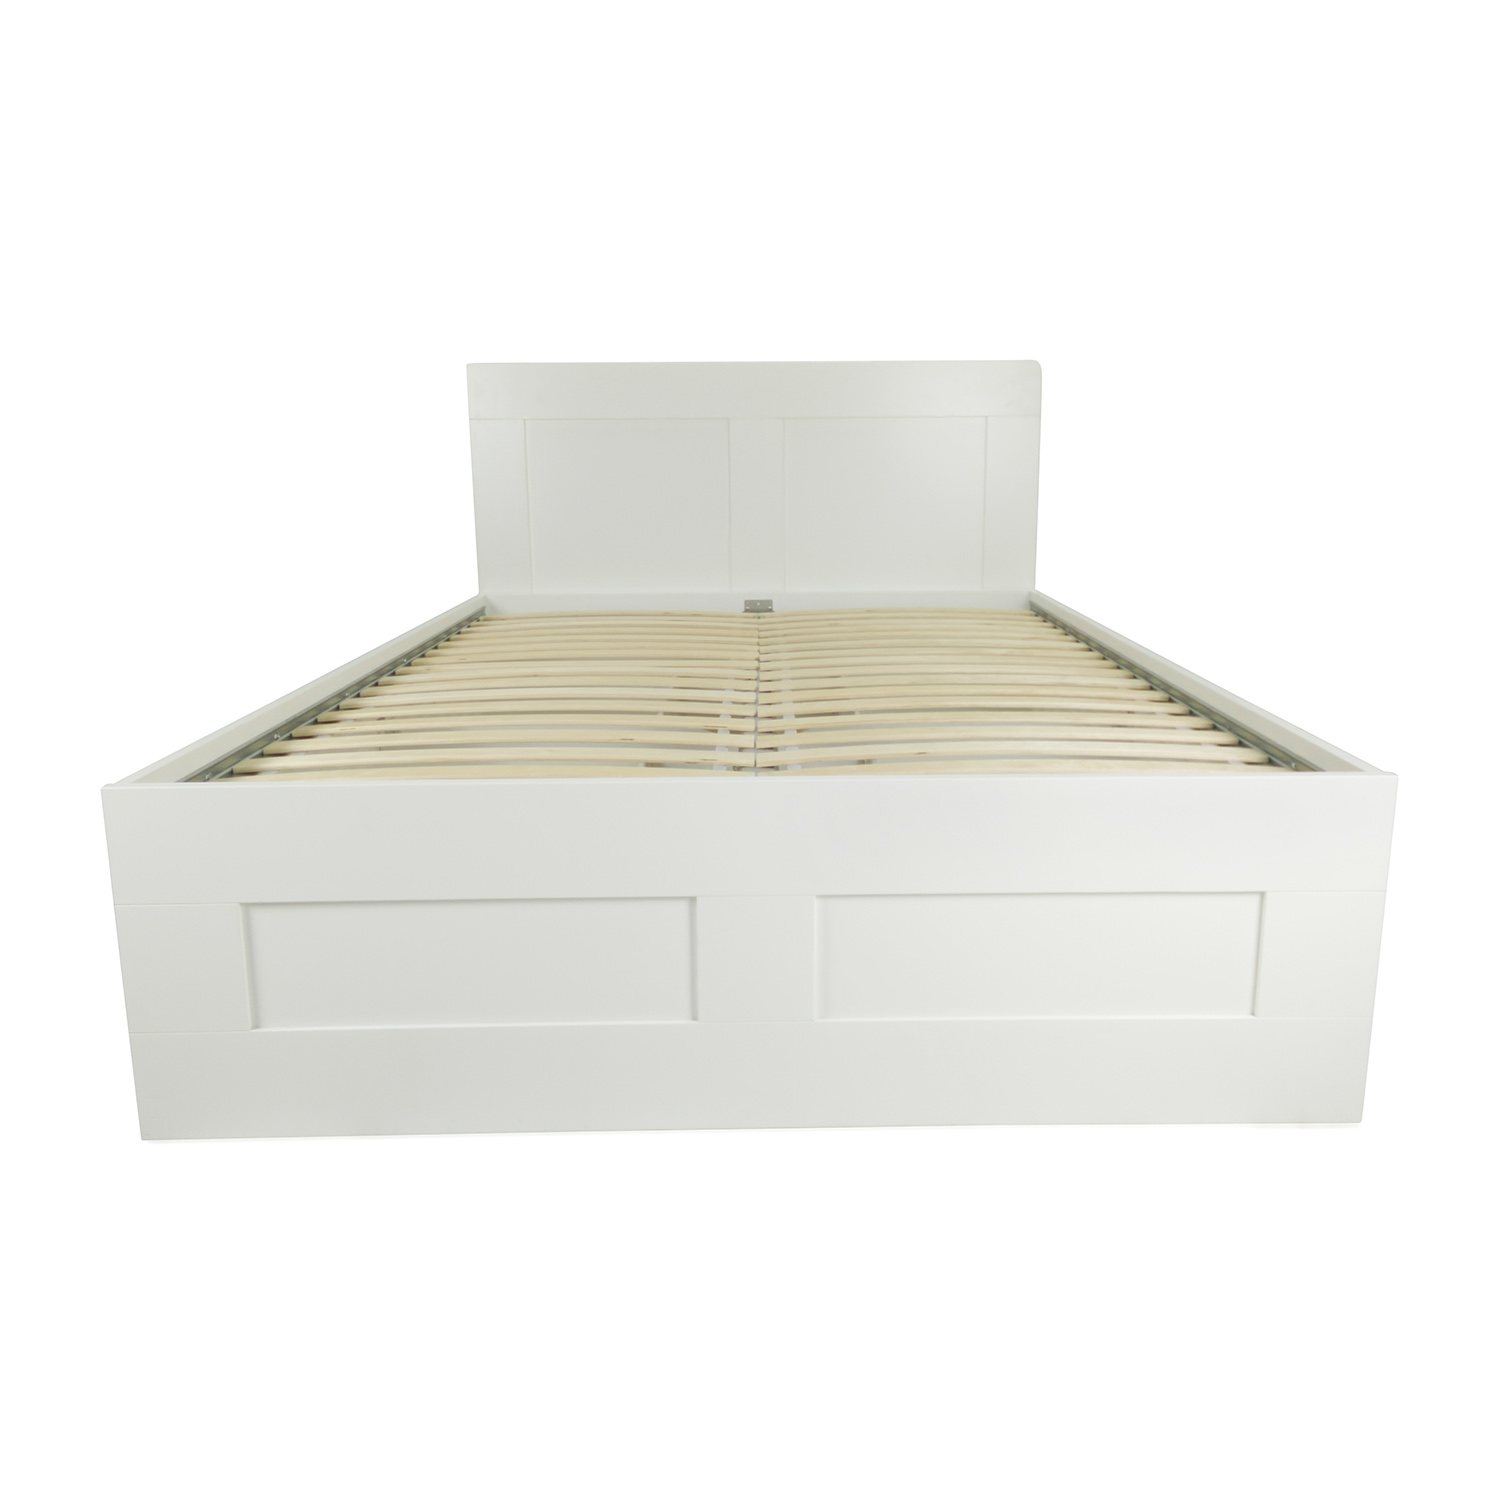 shop IKEA Queen Size Bed Frame IKEA Bed Frames